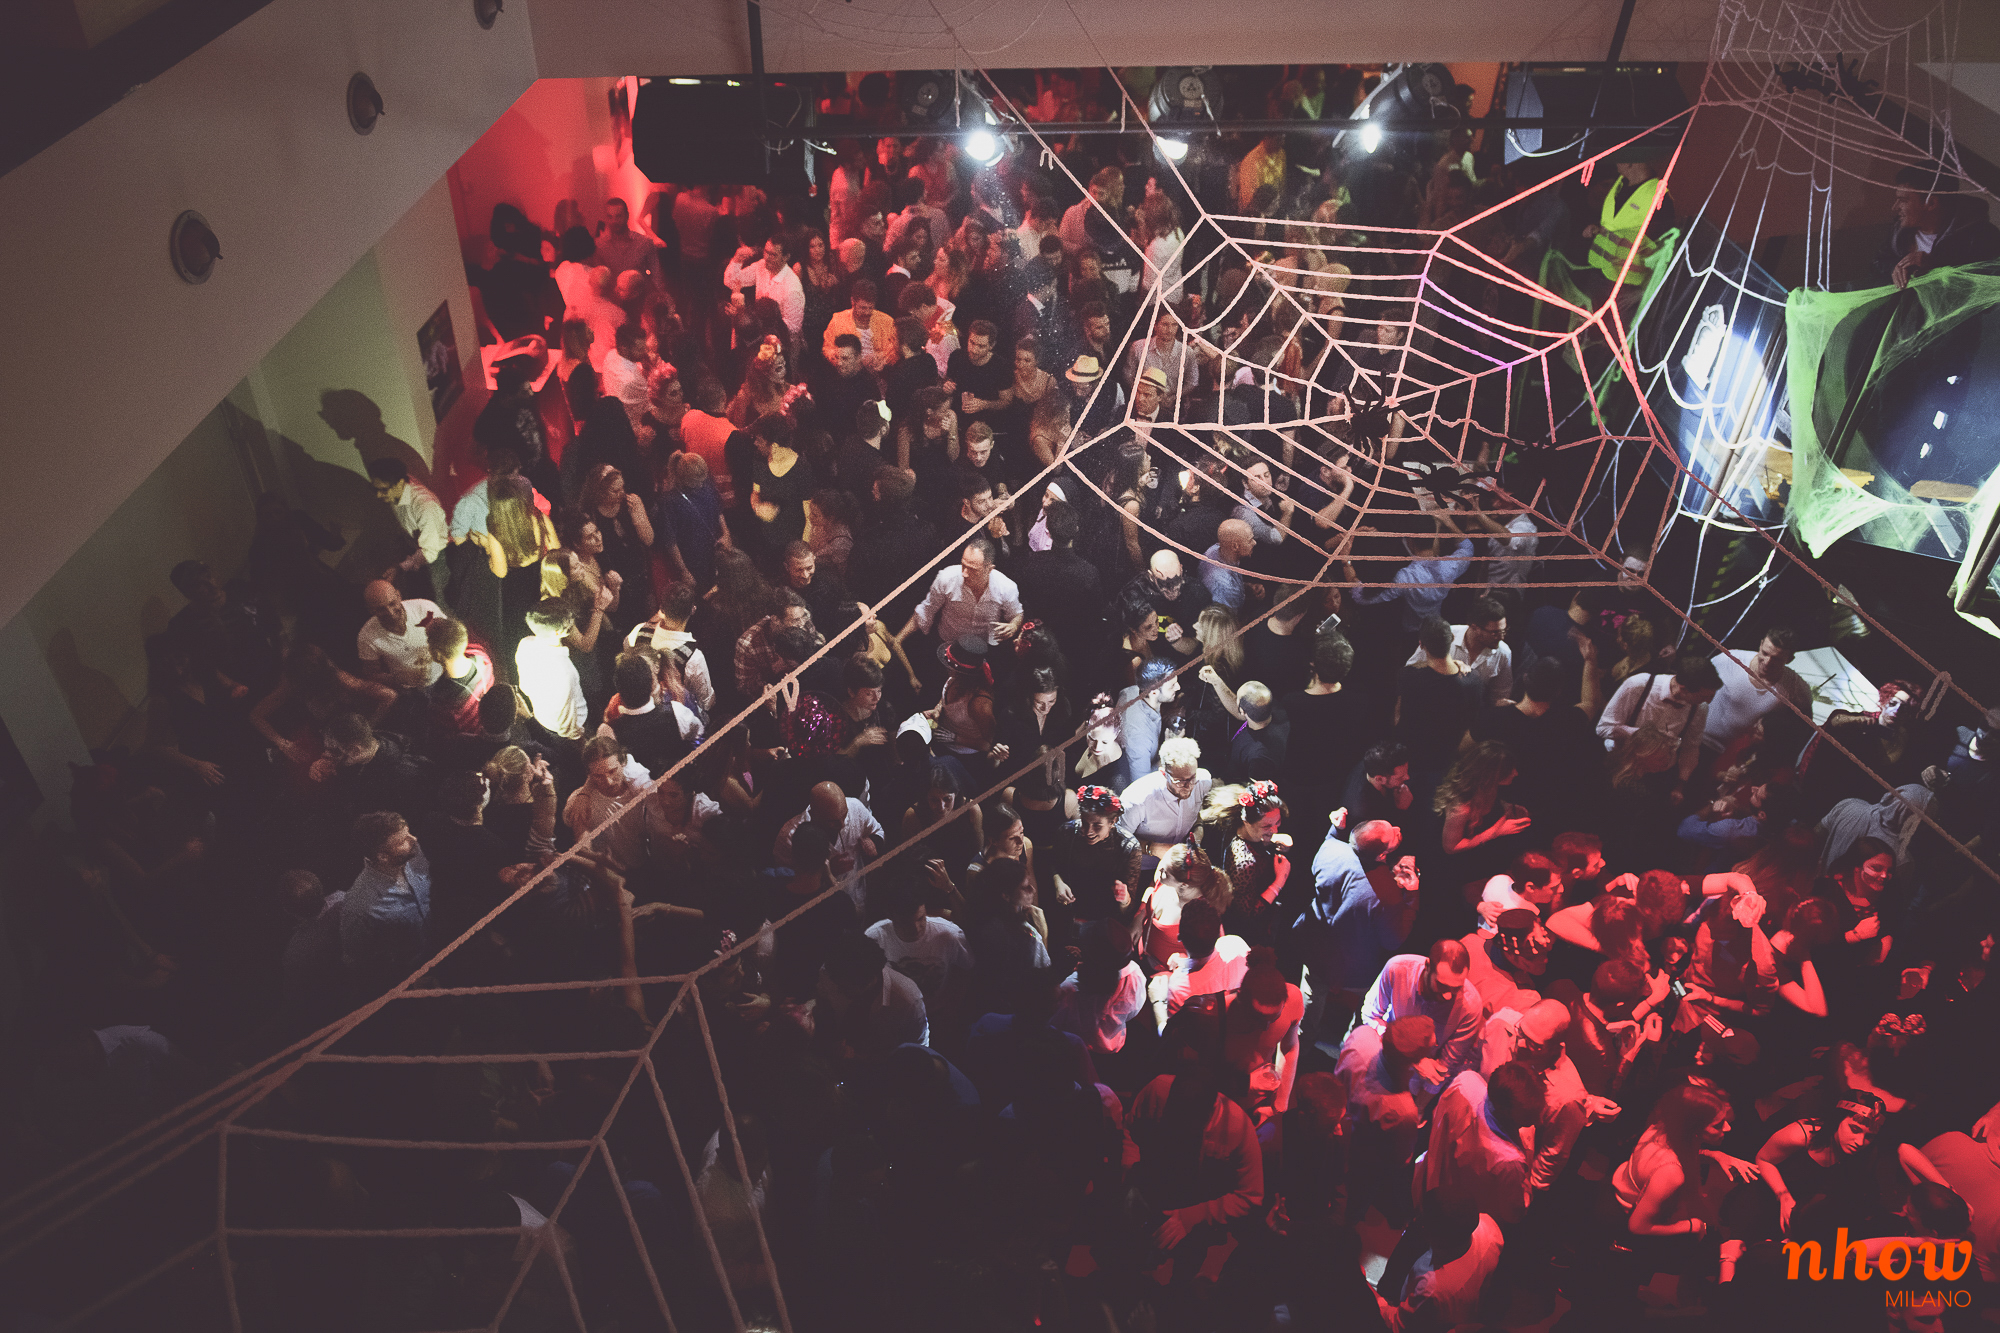 Dead Celebrities   Halloween Private Party   YOUparti nhow hotel 31 ottobre